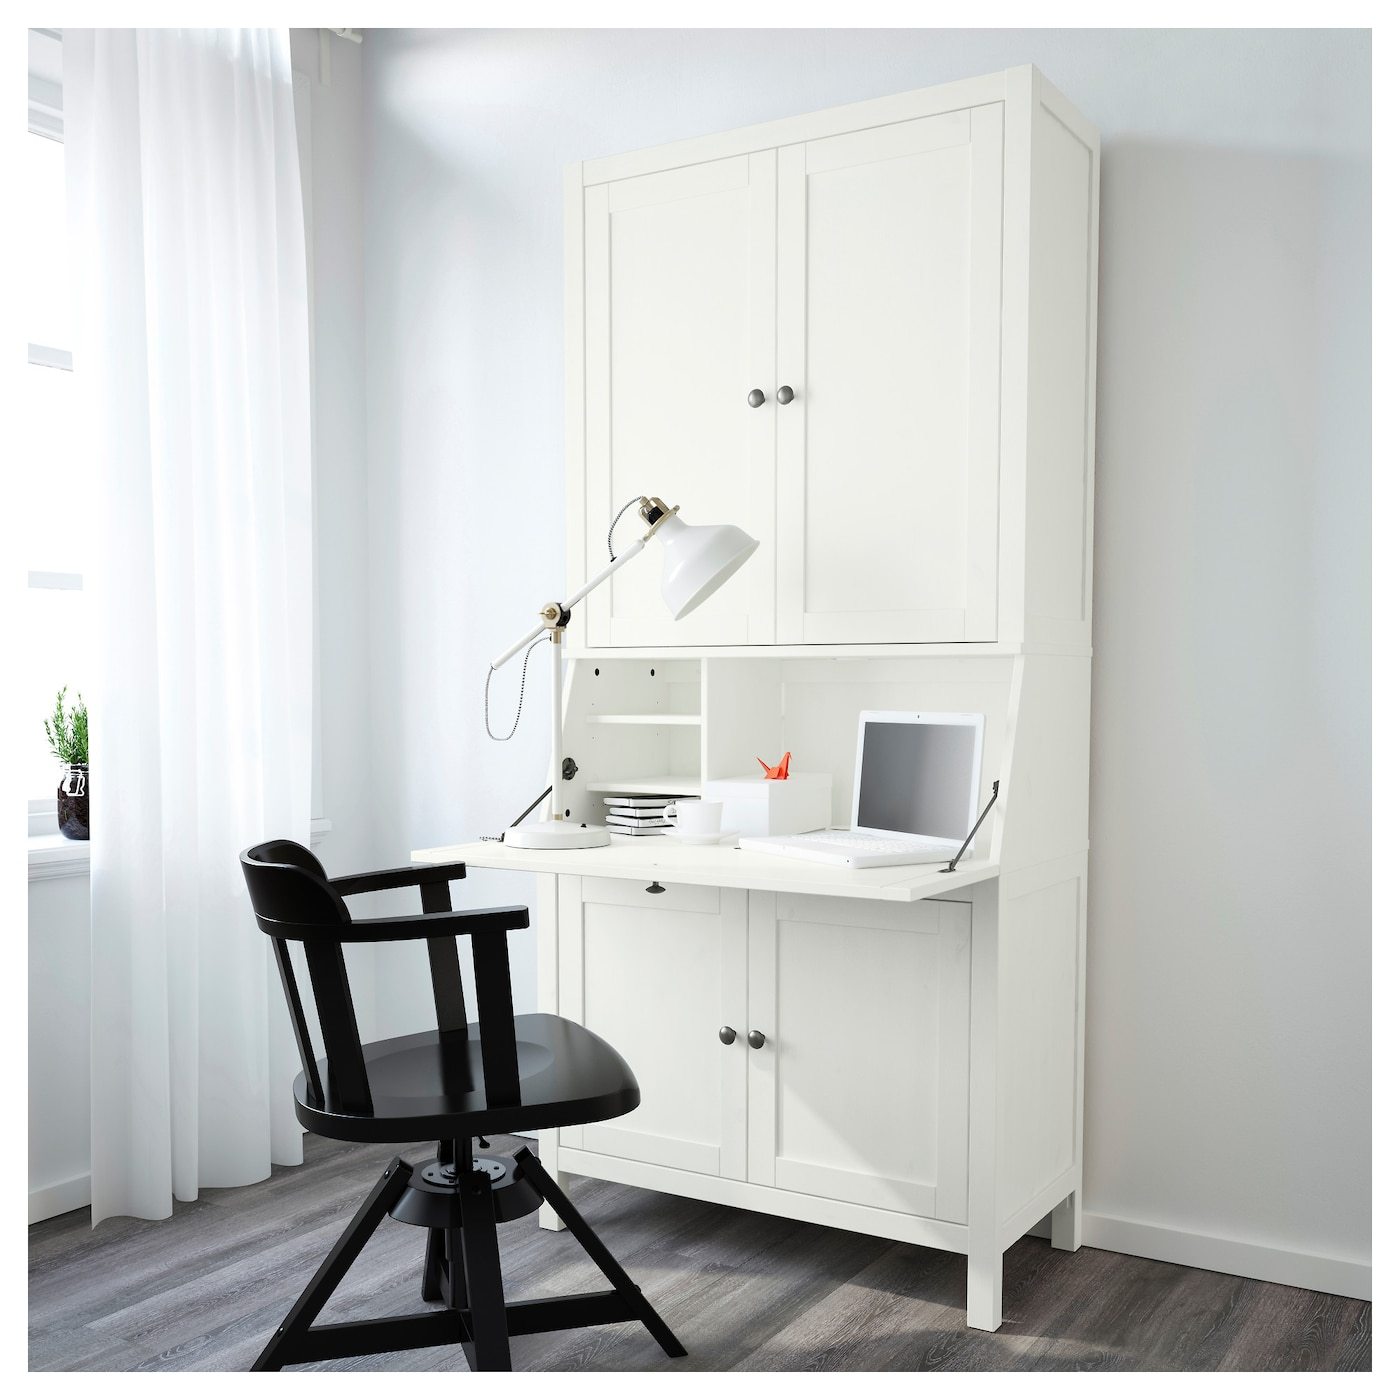 hemnes secretaire met opbouwdeel witgebeitst 89 x 198 cm ikea. Black Bedroom Furniture Sets. Home Design Ideas